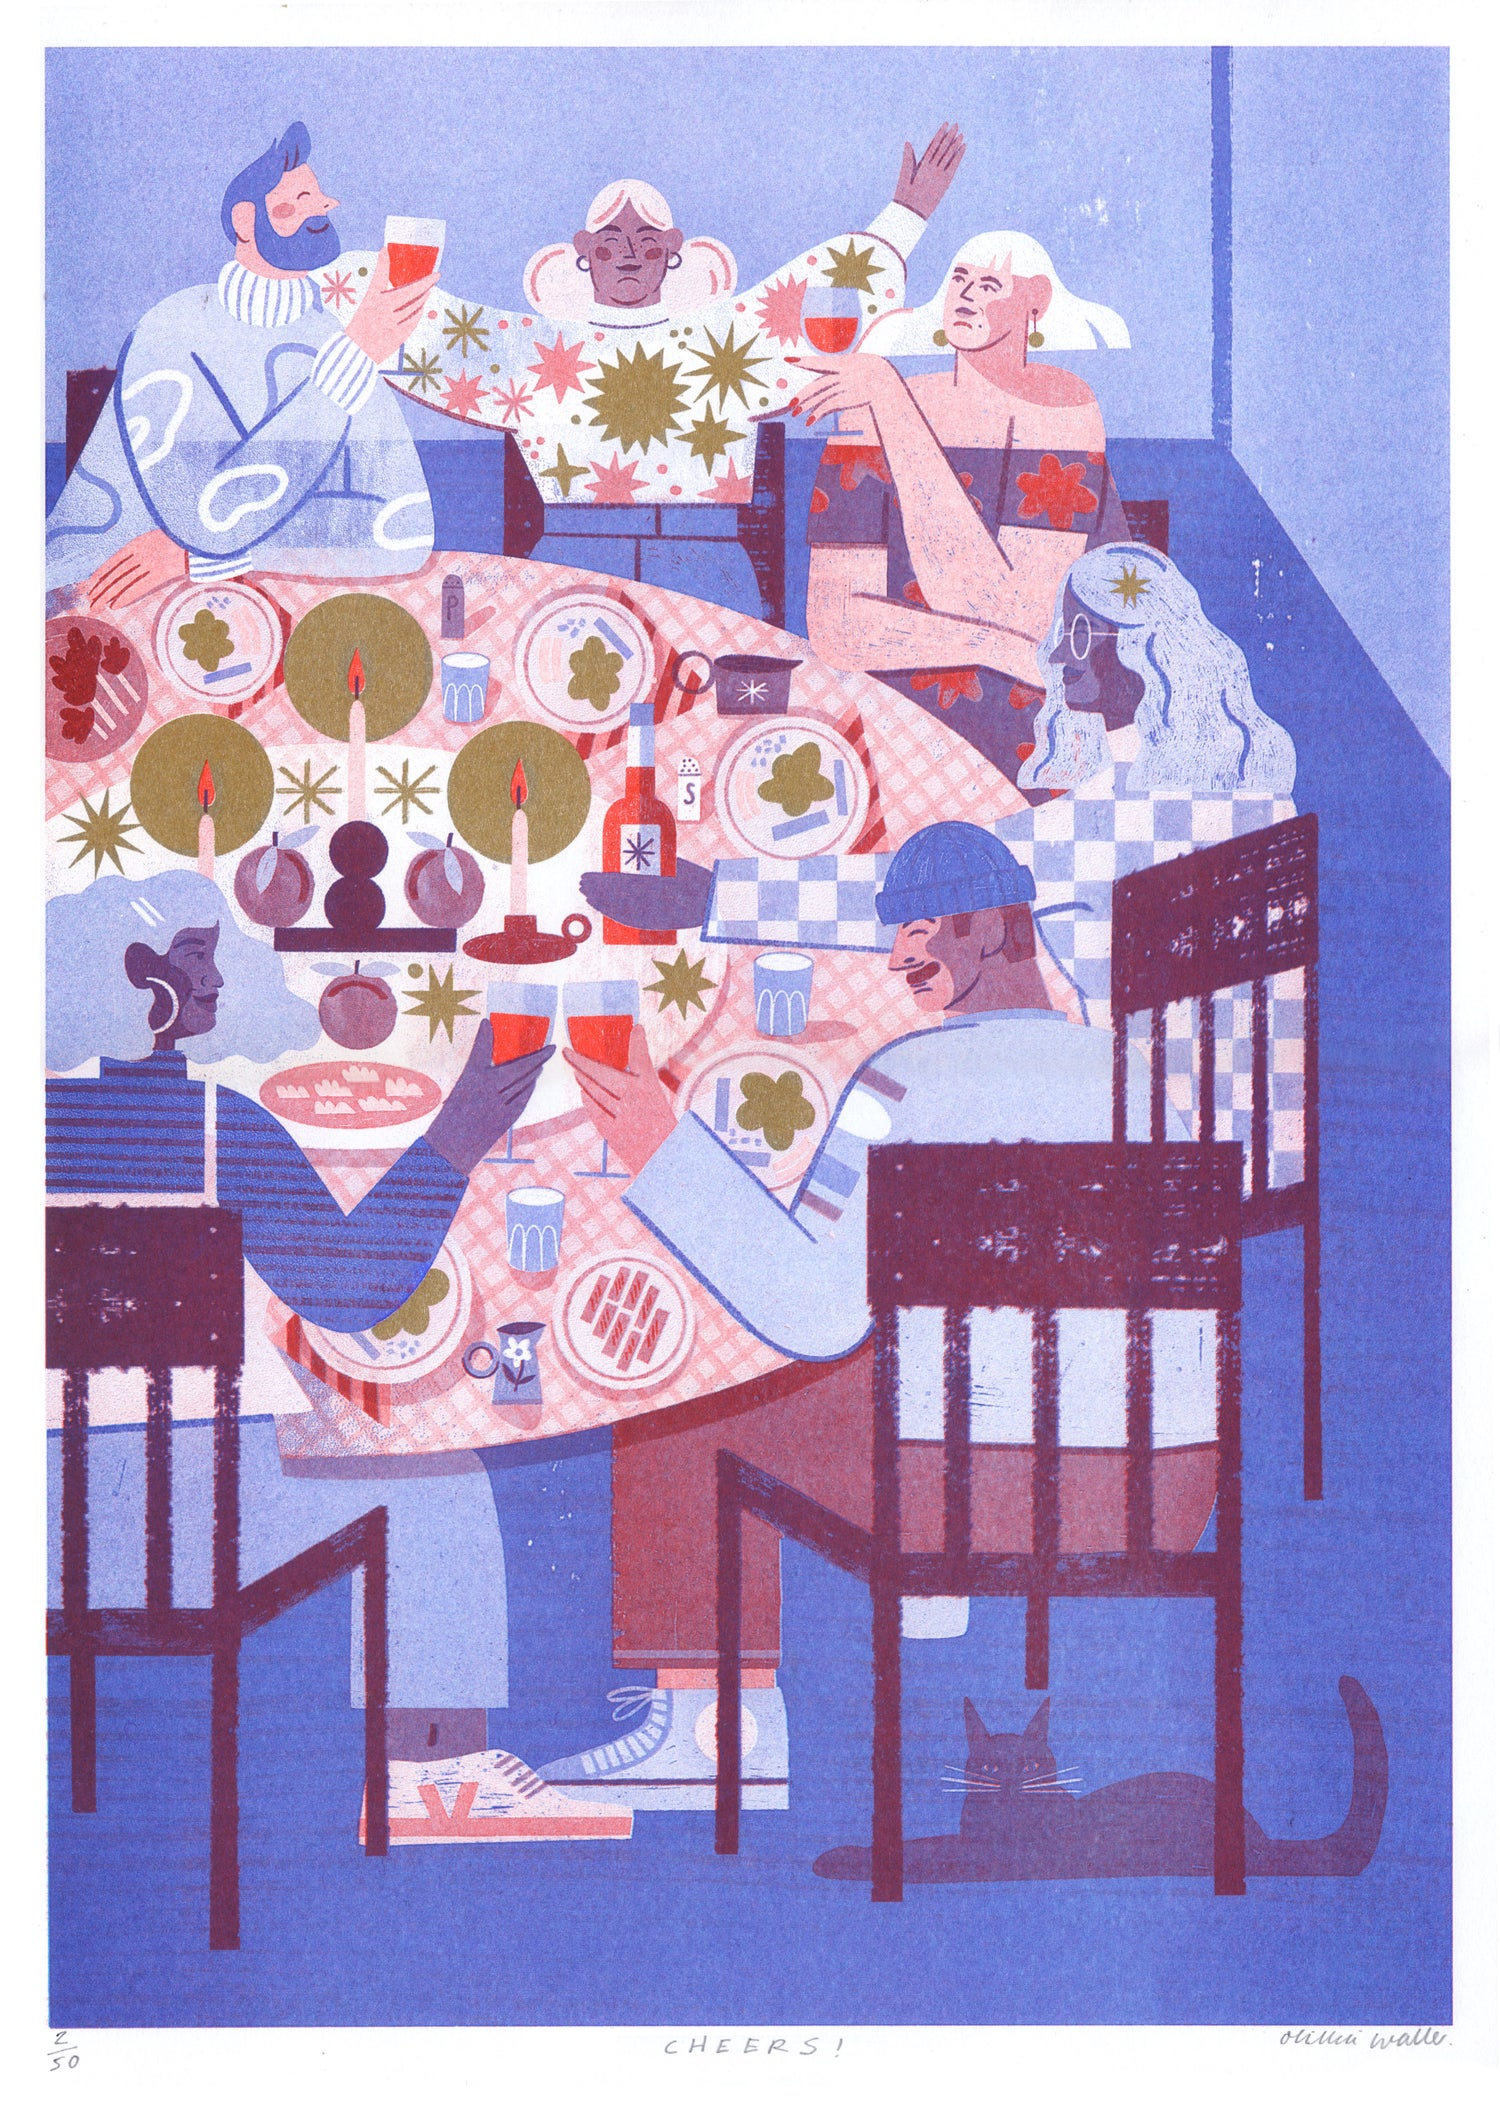 Image of Cheers riso print